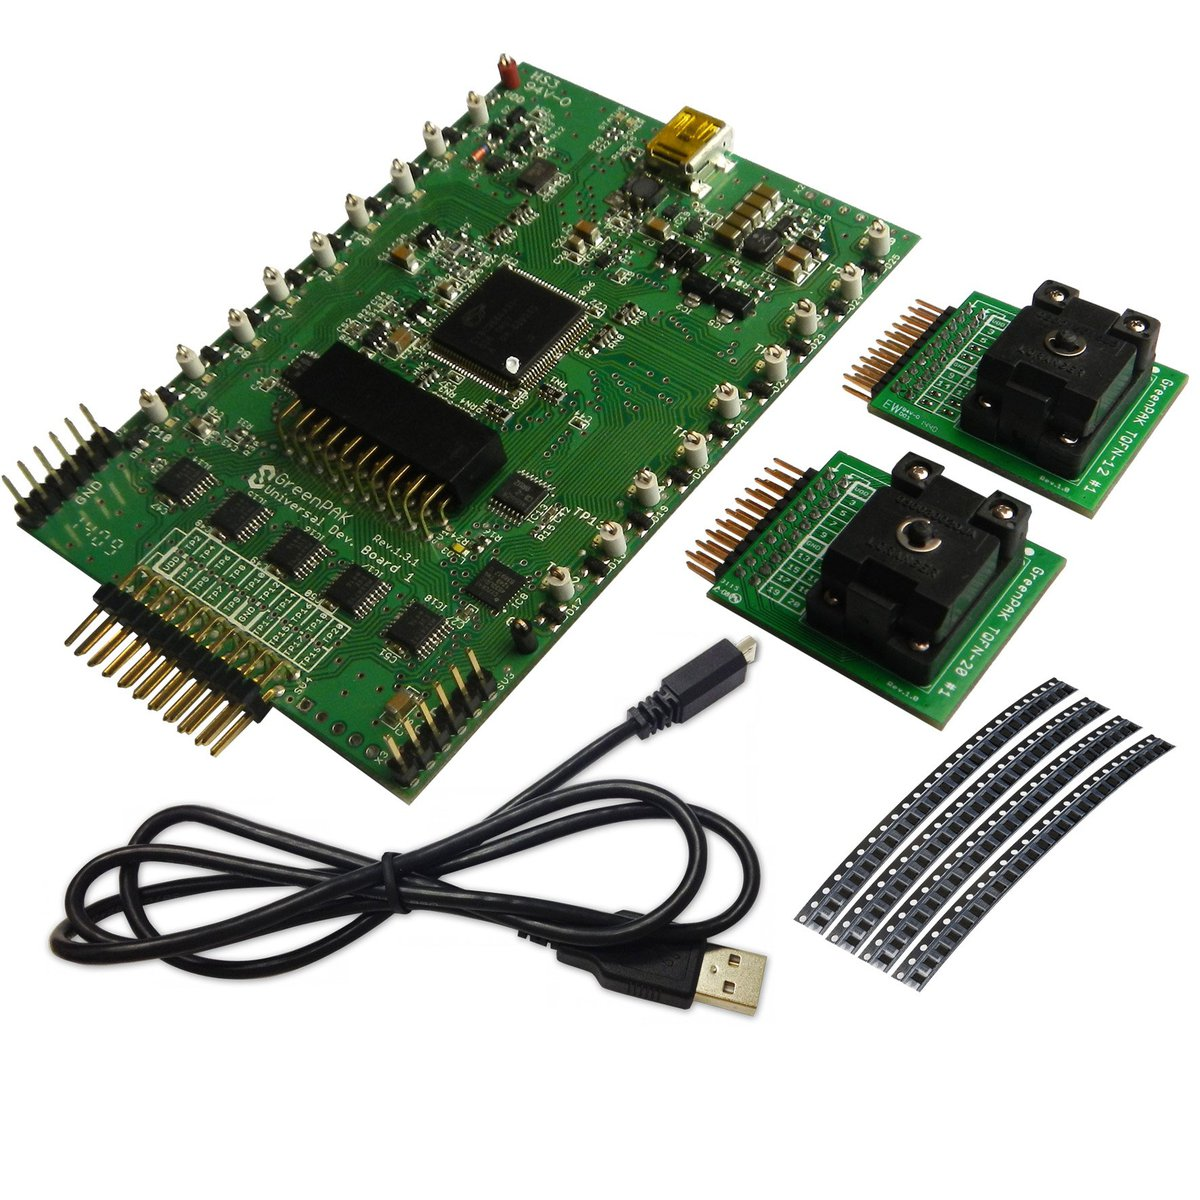 Greenpak 3 Development Kit From Silego Technology On Tindie Integrated Circuit Sales Providing Programmable